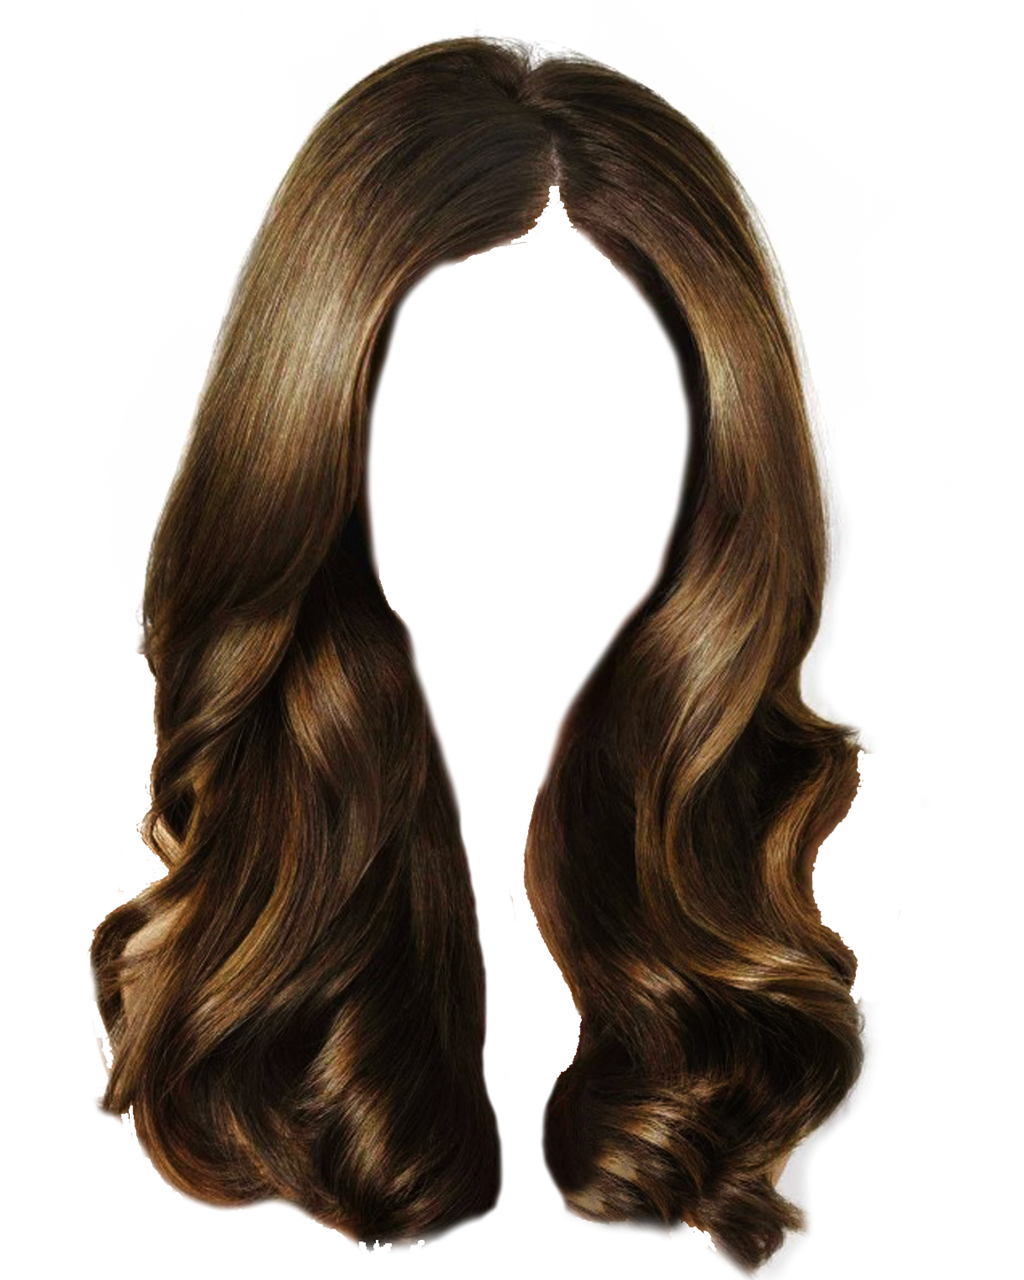 Png Hair 7 by Moonglowlilly on DeviantArt: moonglowlilly.deviantart.com/art/Png-Hair-7-339337878